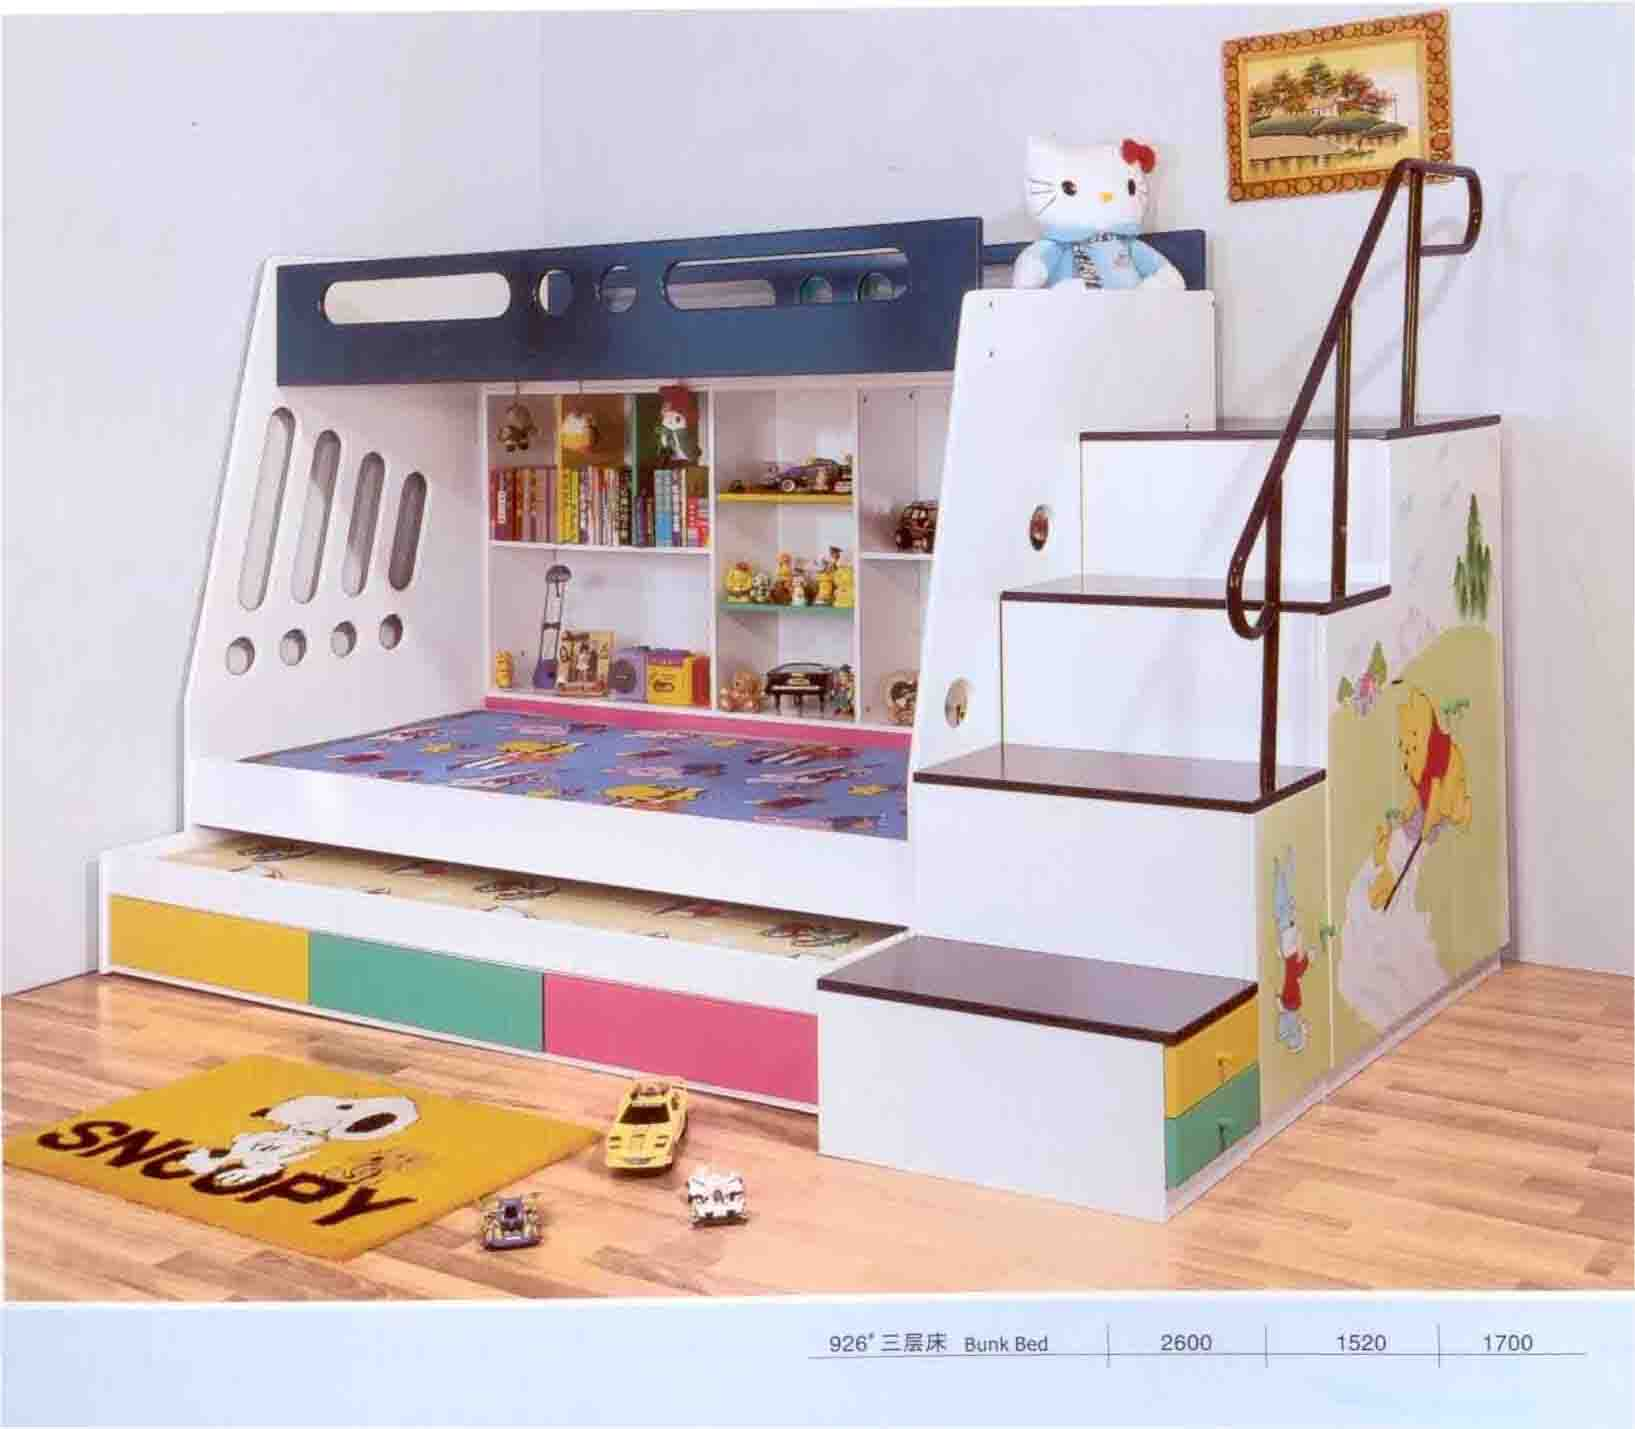 Toddler Bunks Children 39s Furniture Macalinne